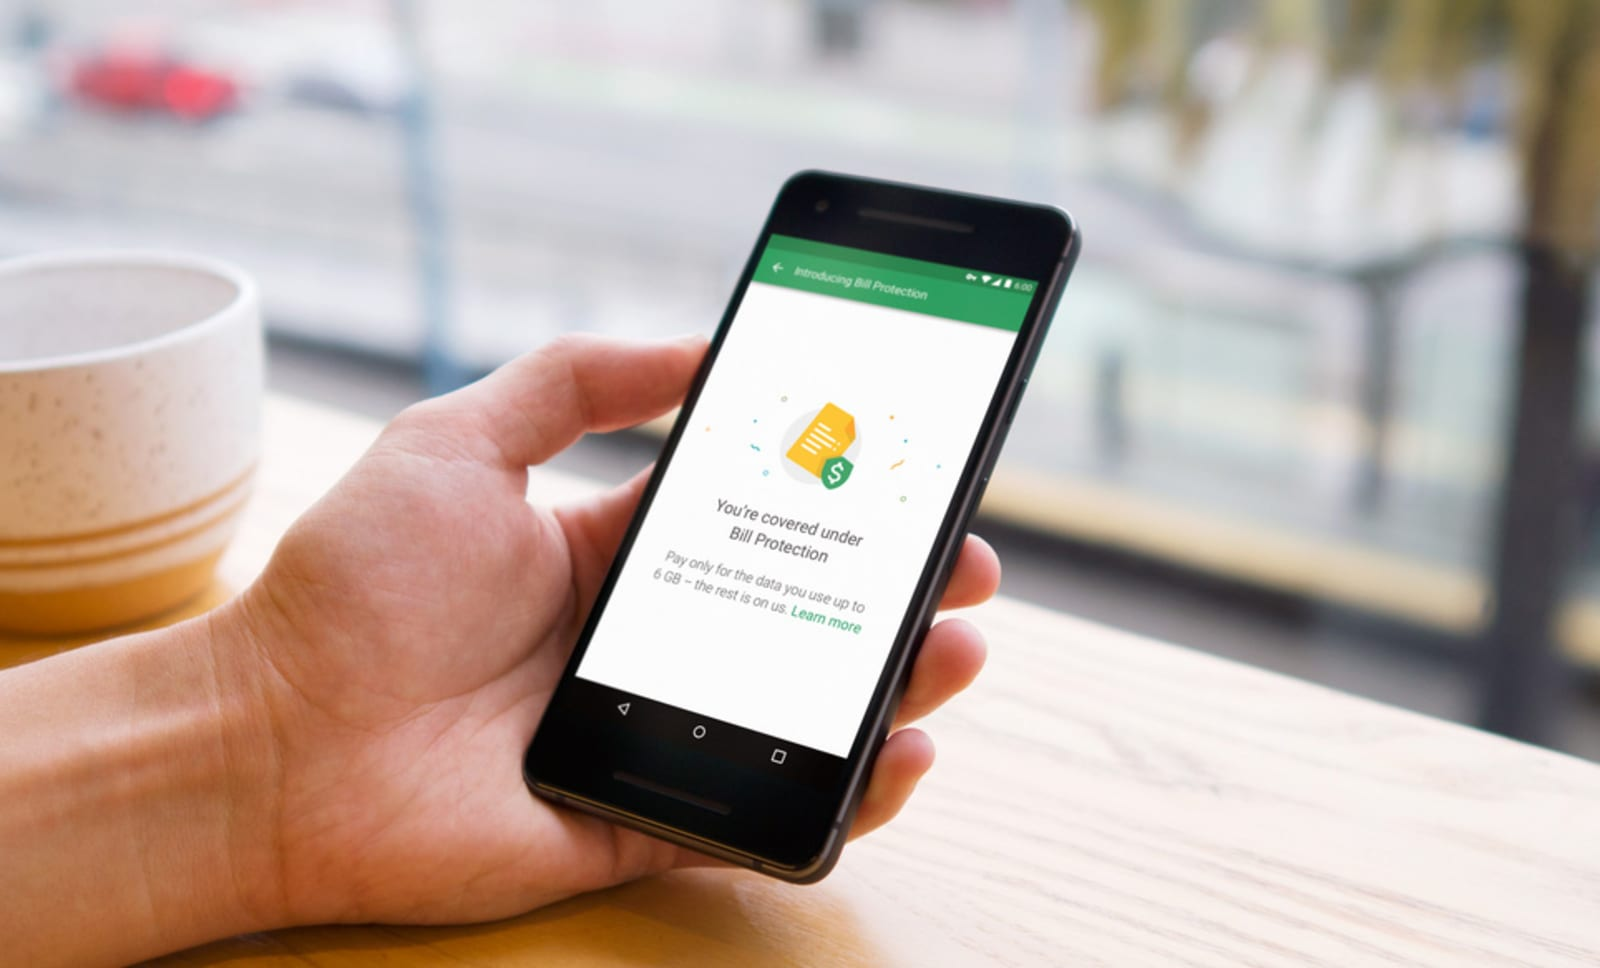 Google Fi's iPhone debut comes with caveats